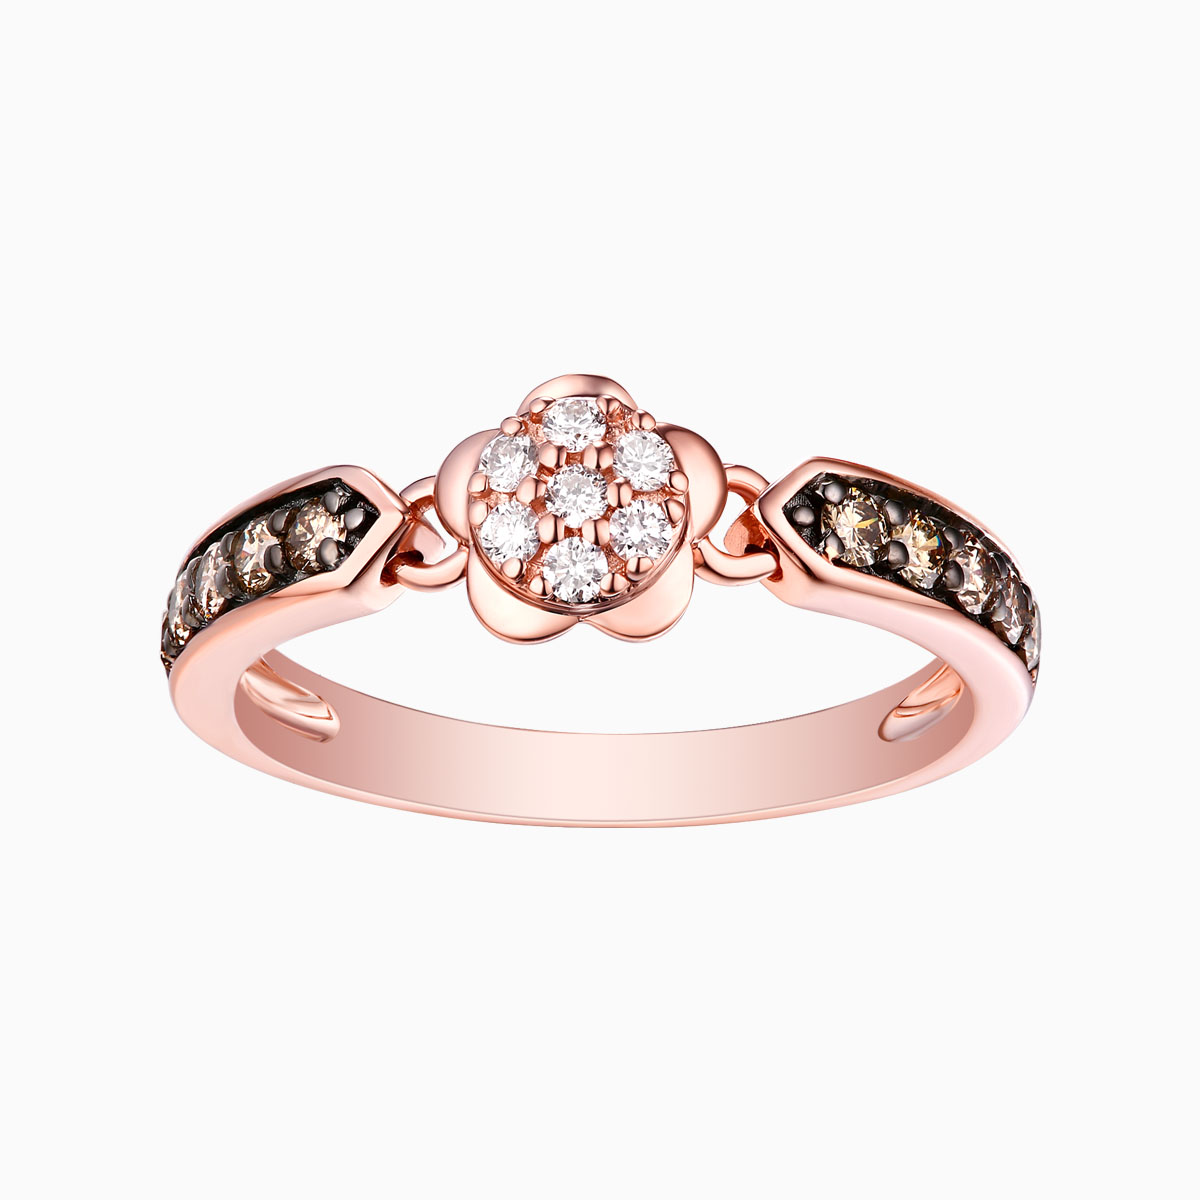 R24980WBR- 14K Rose Gold Diamond Ring, 0.43 TCW